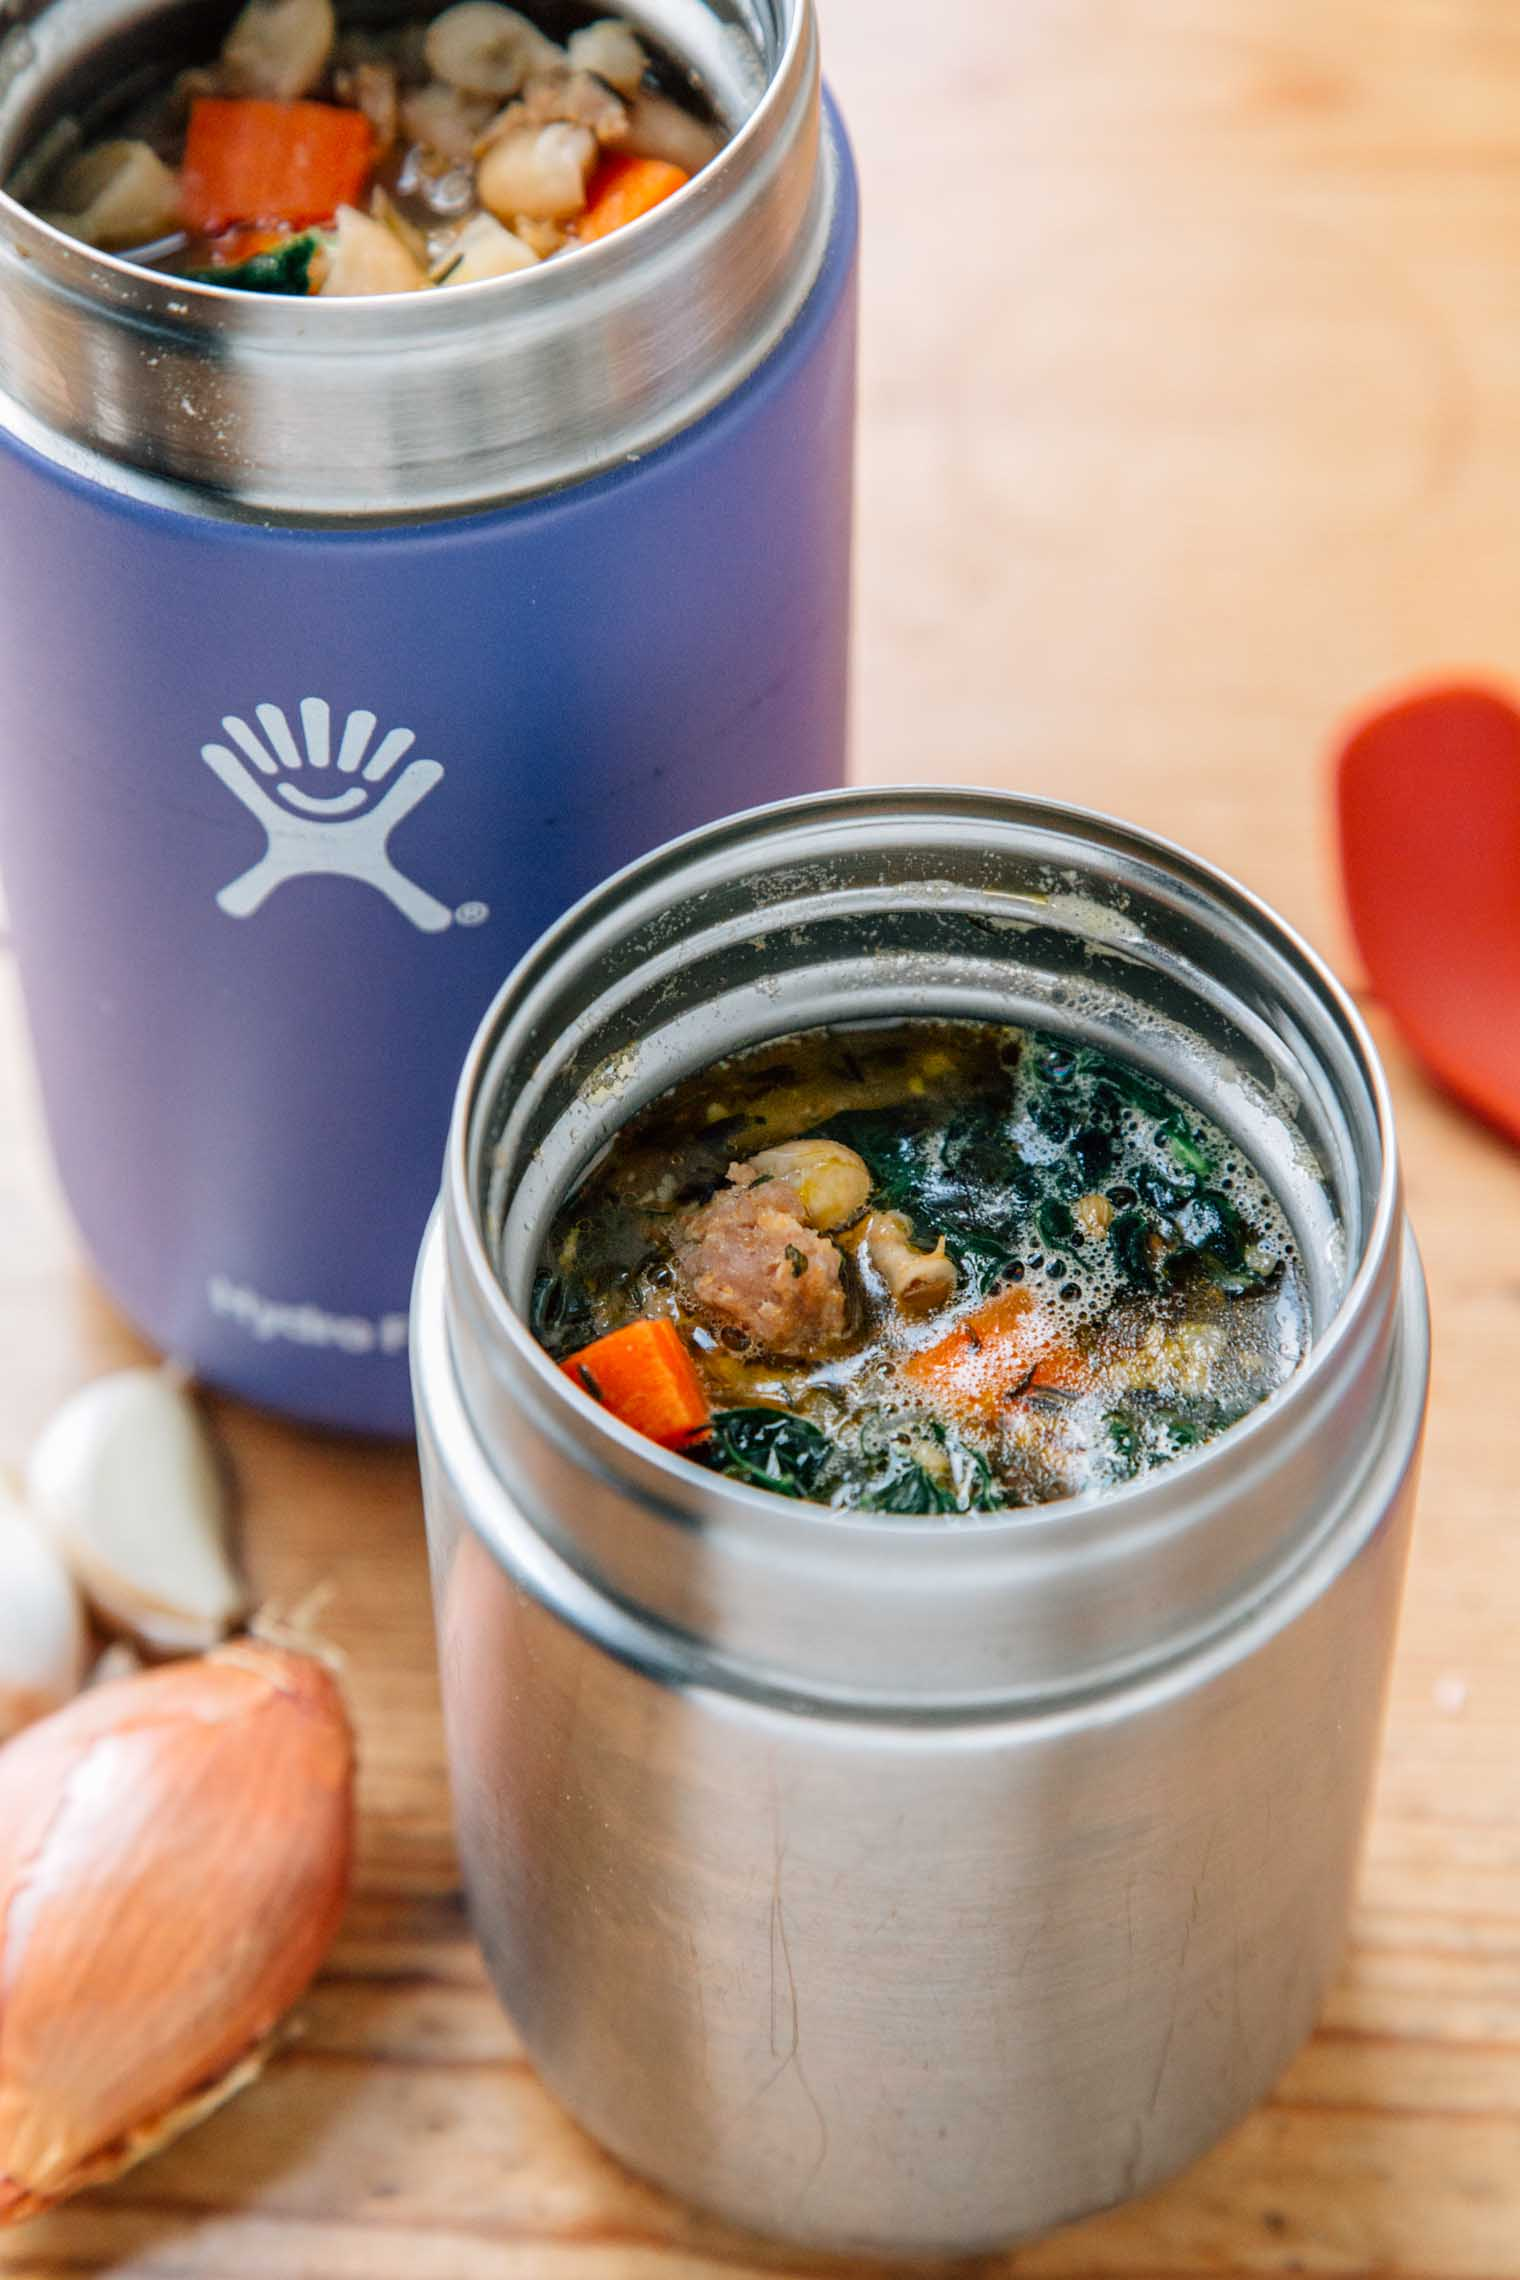 Sausage and bean soup in an insulated container